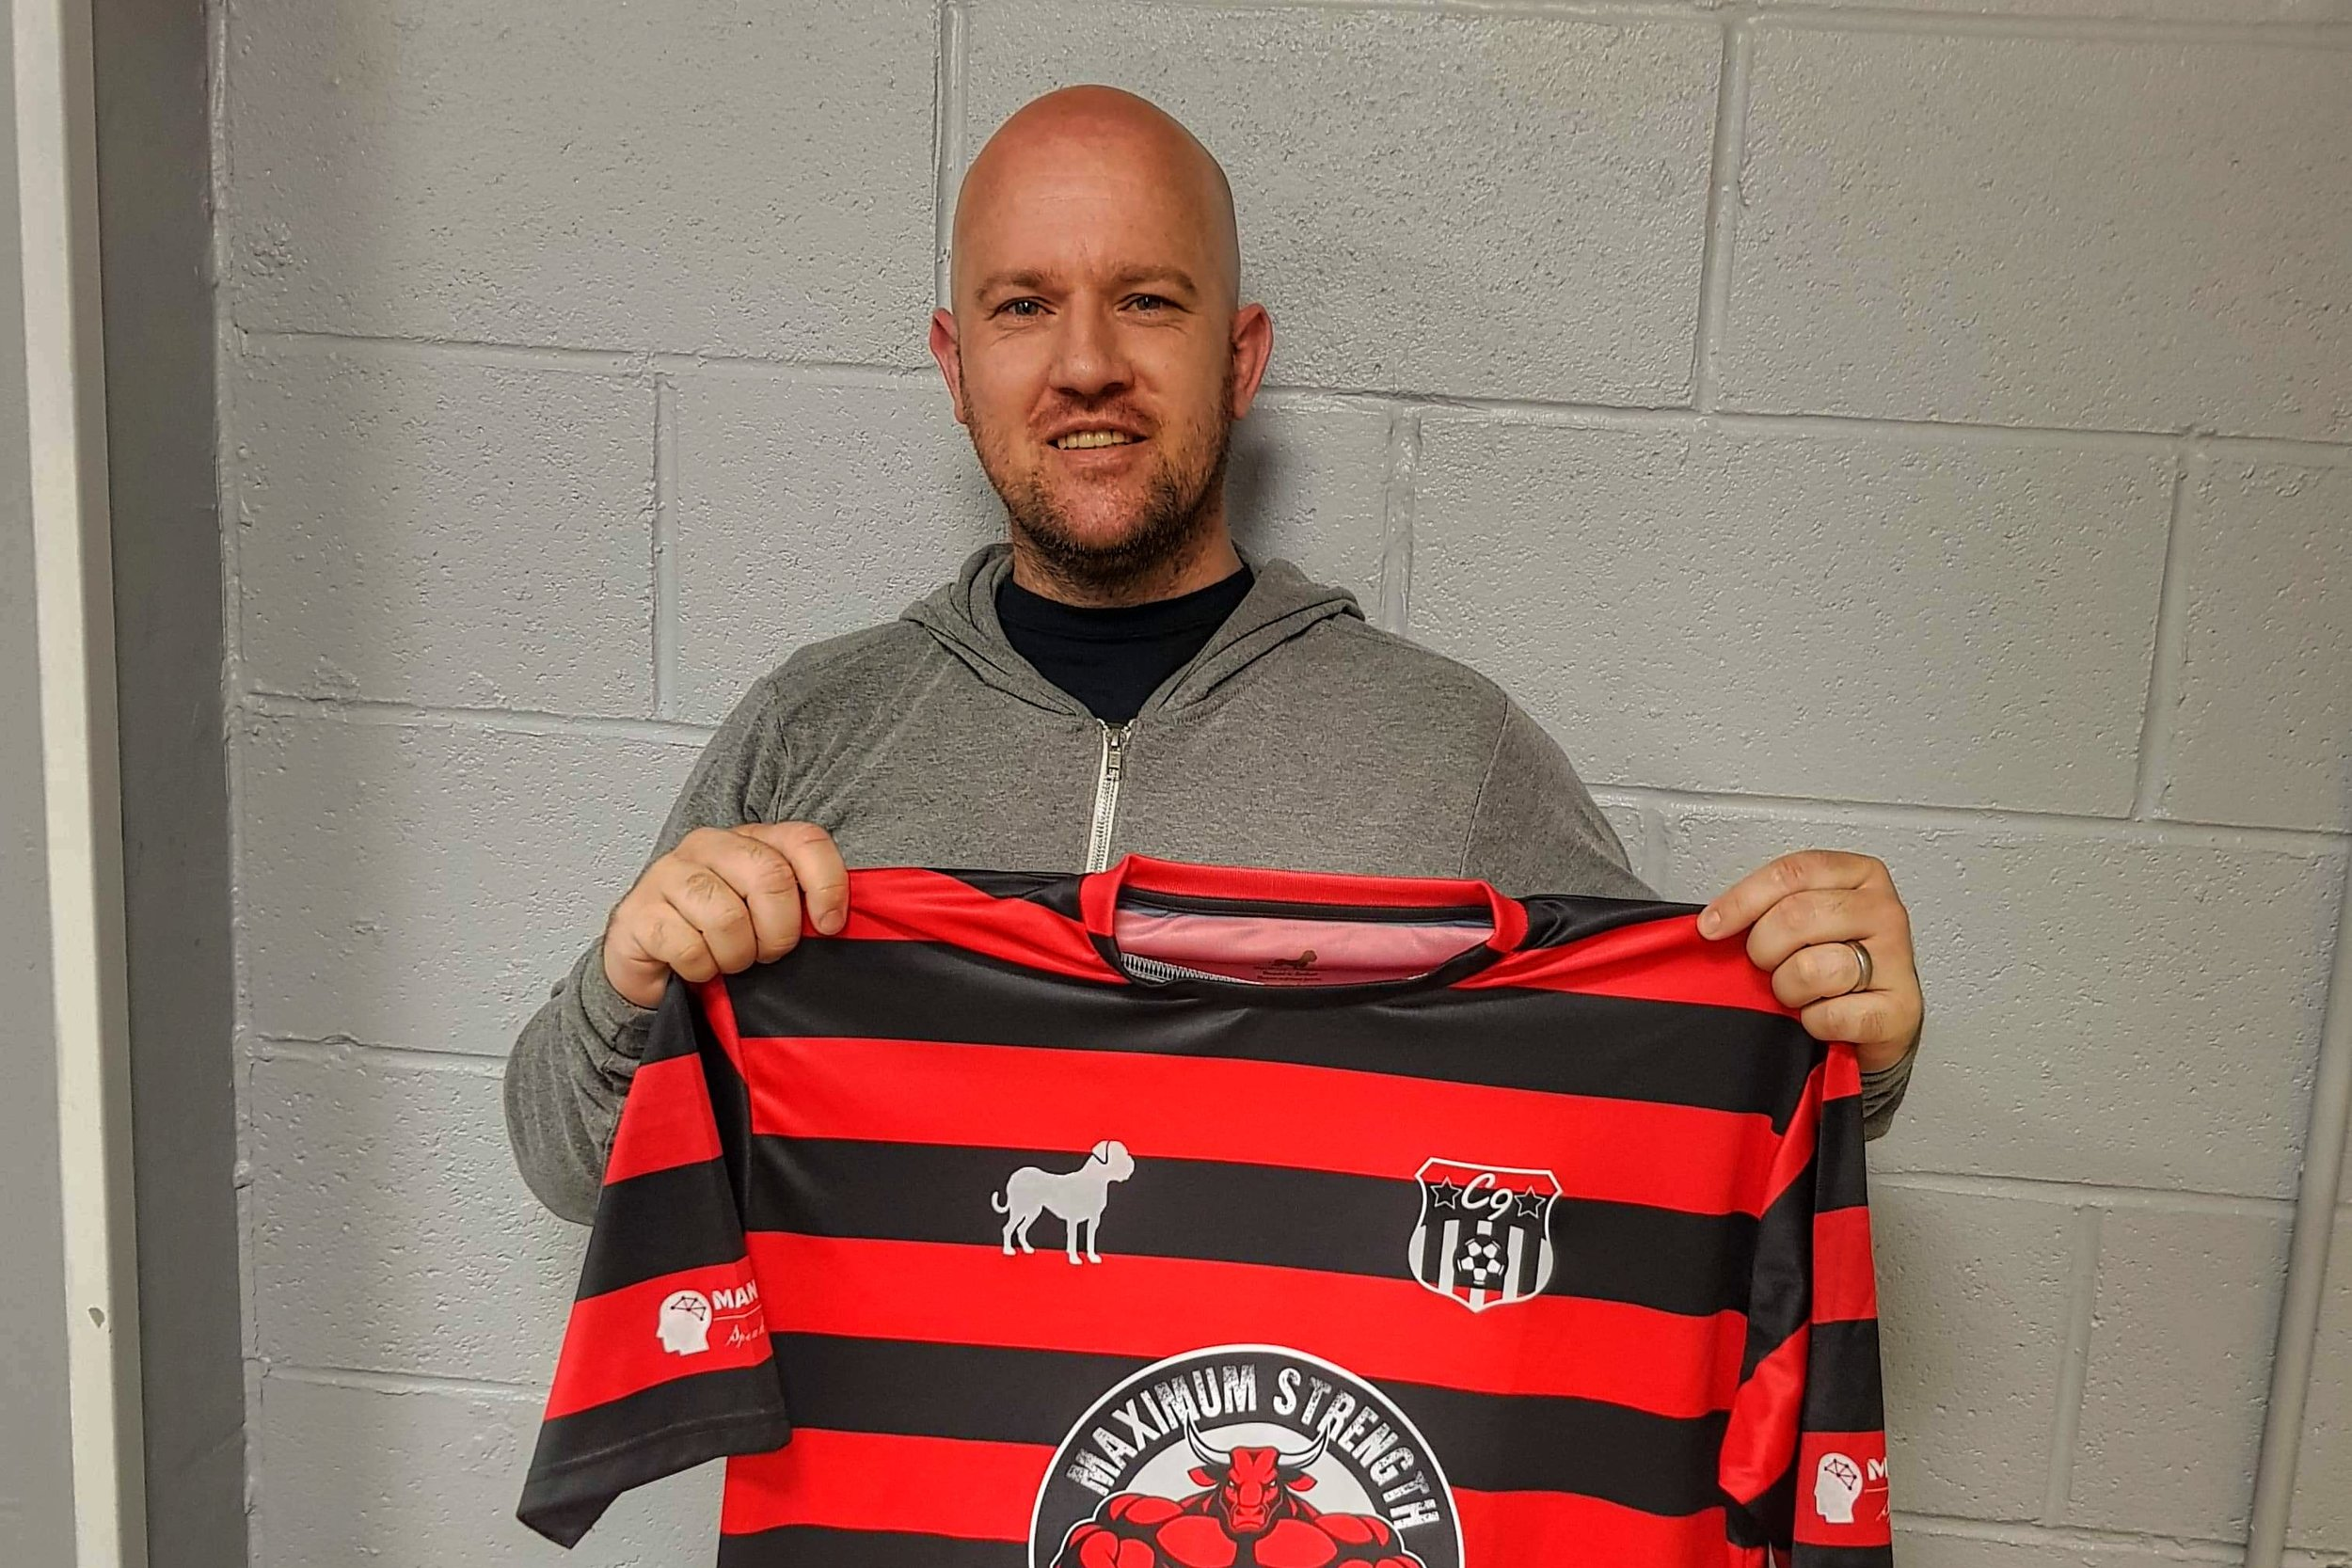 Kris Livingstone signs for 1 year.